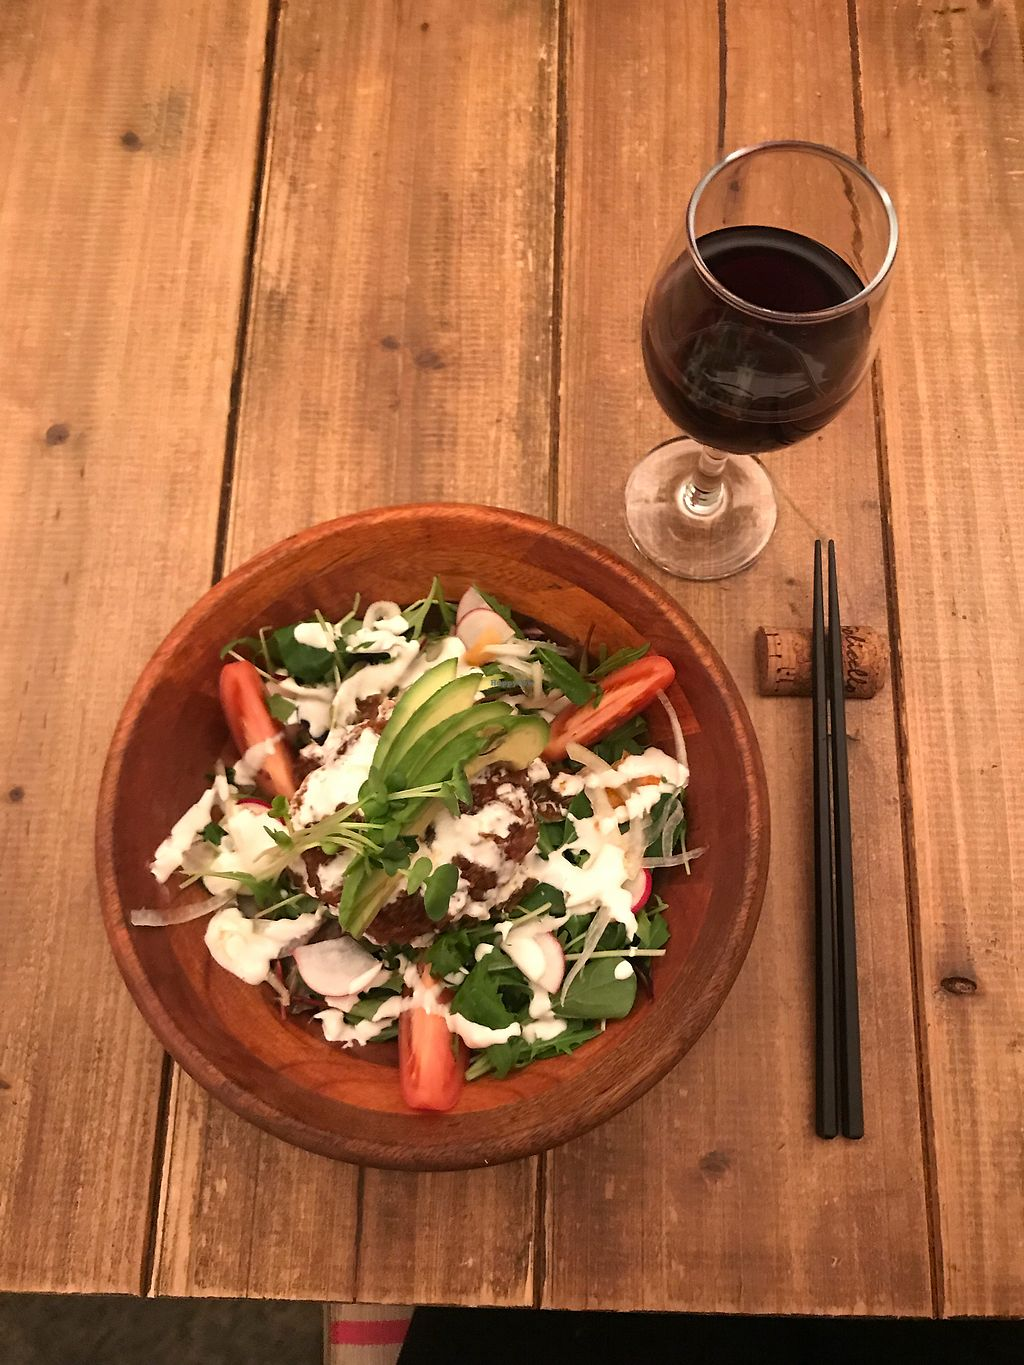 """Photo of Paprika Shokudo Vegan  by <a href=""""/members/profile/MelissaW"""">MelissaW</a> <br/>Burger/rice bowl with wine  <br/> February 4, 2018  - <a href='/contact/abuse/image/45738/354805'>Report</a>"""